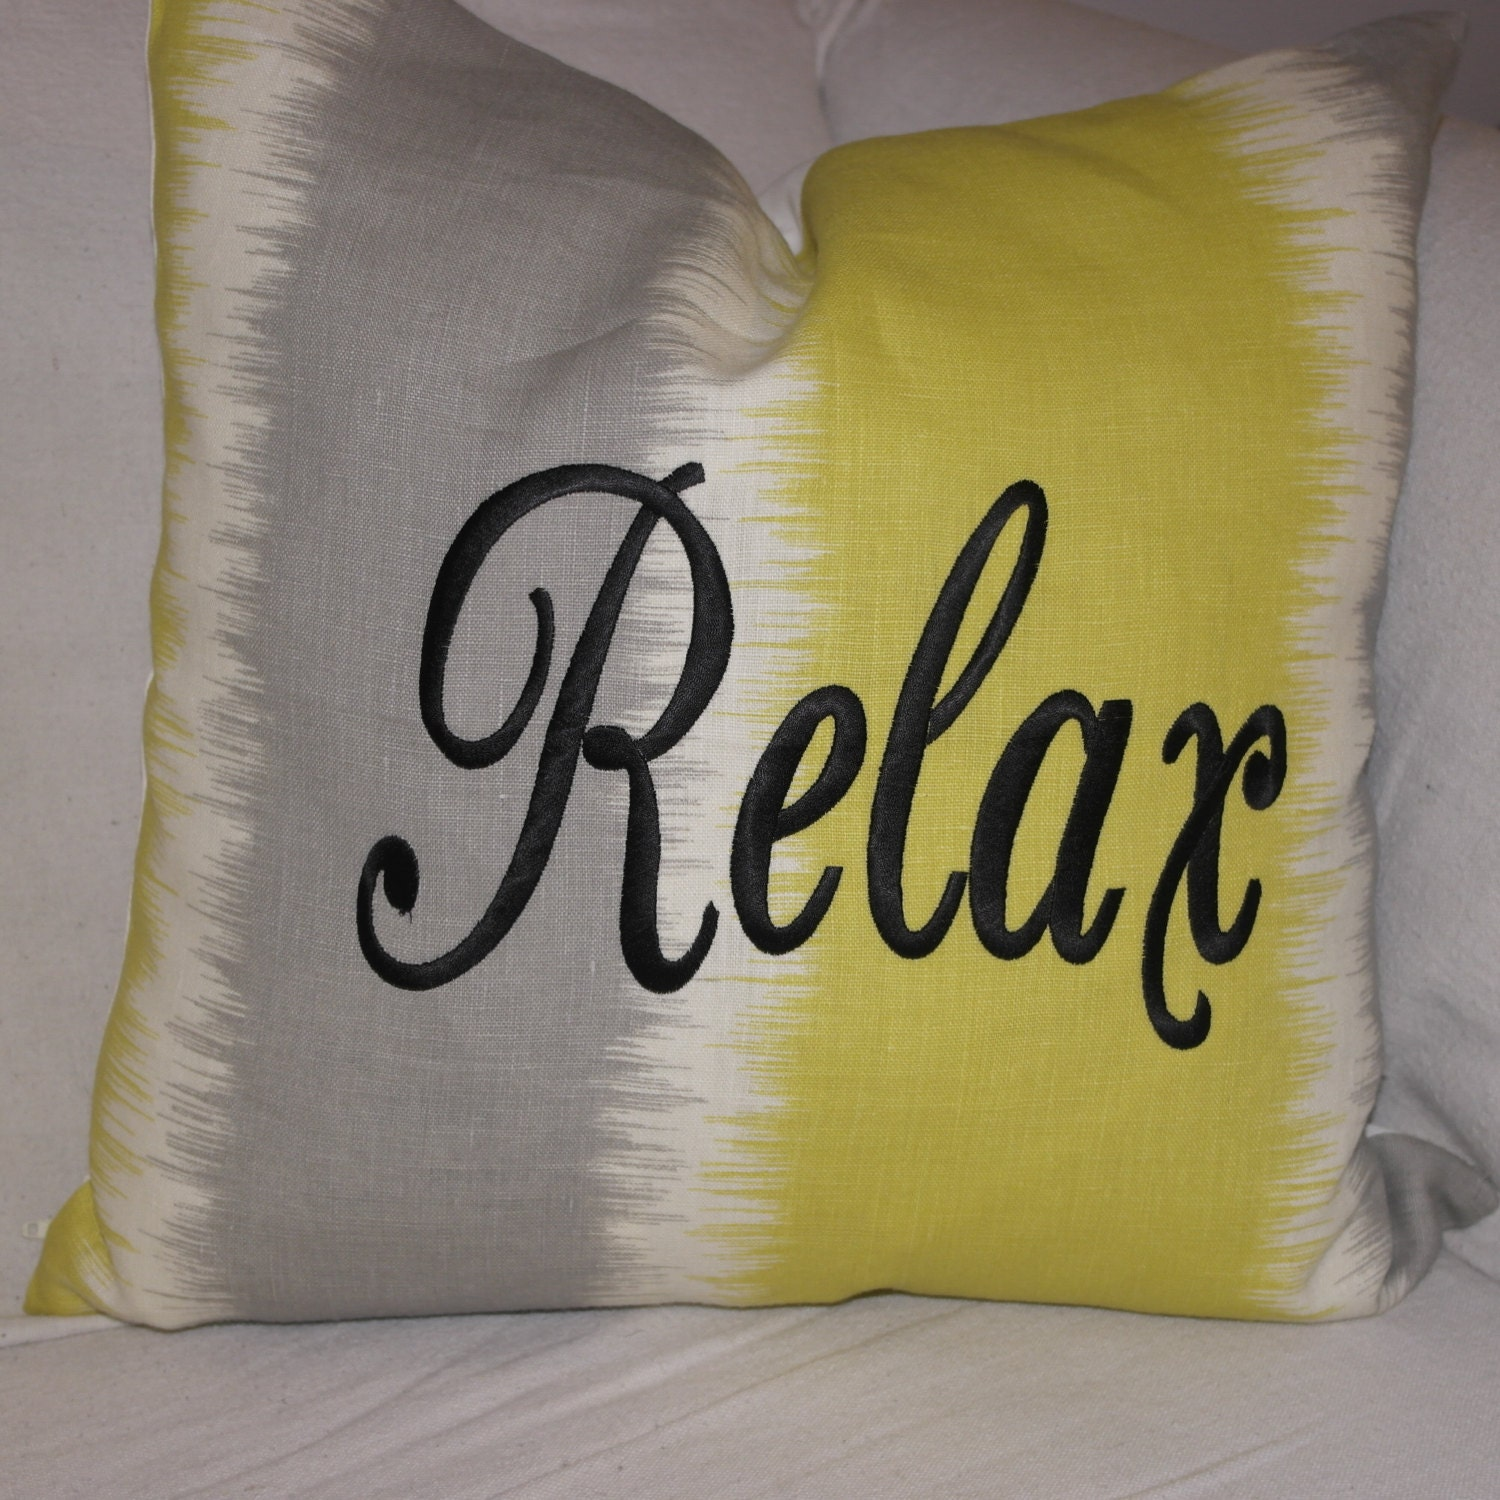 Embroidered Throw Pillow Covers : Embroidered Throw Pillow Cover 18 x 18 Citrine Yellow